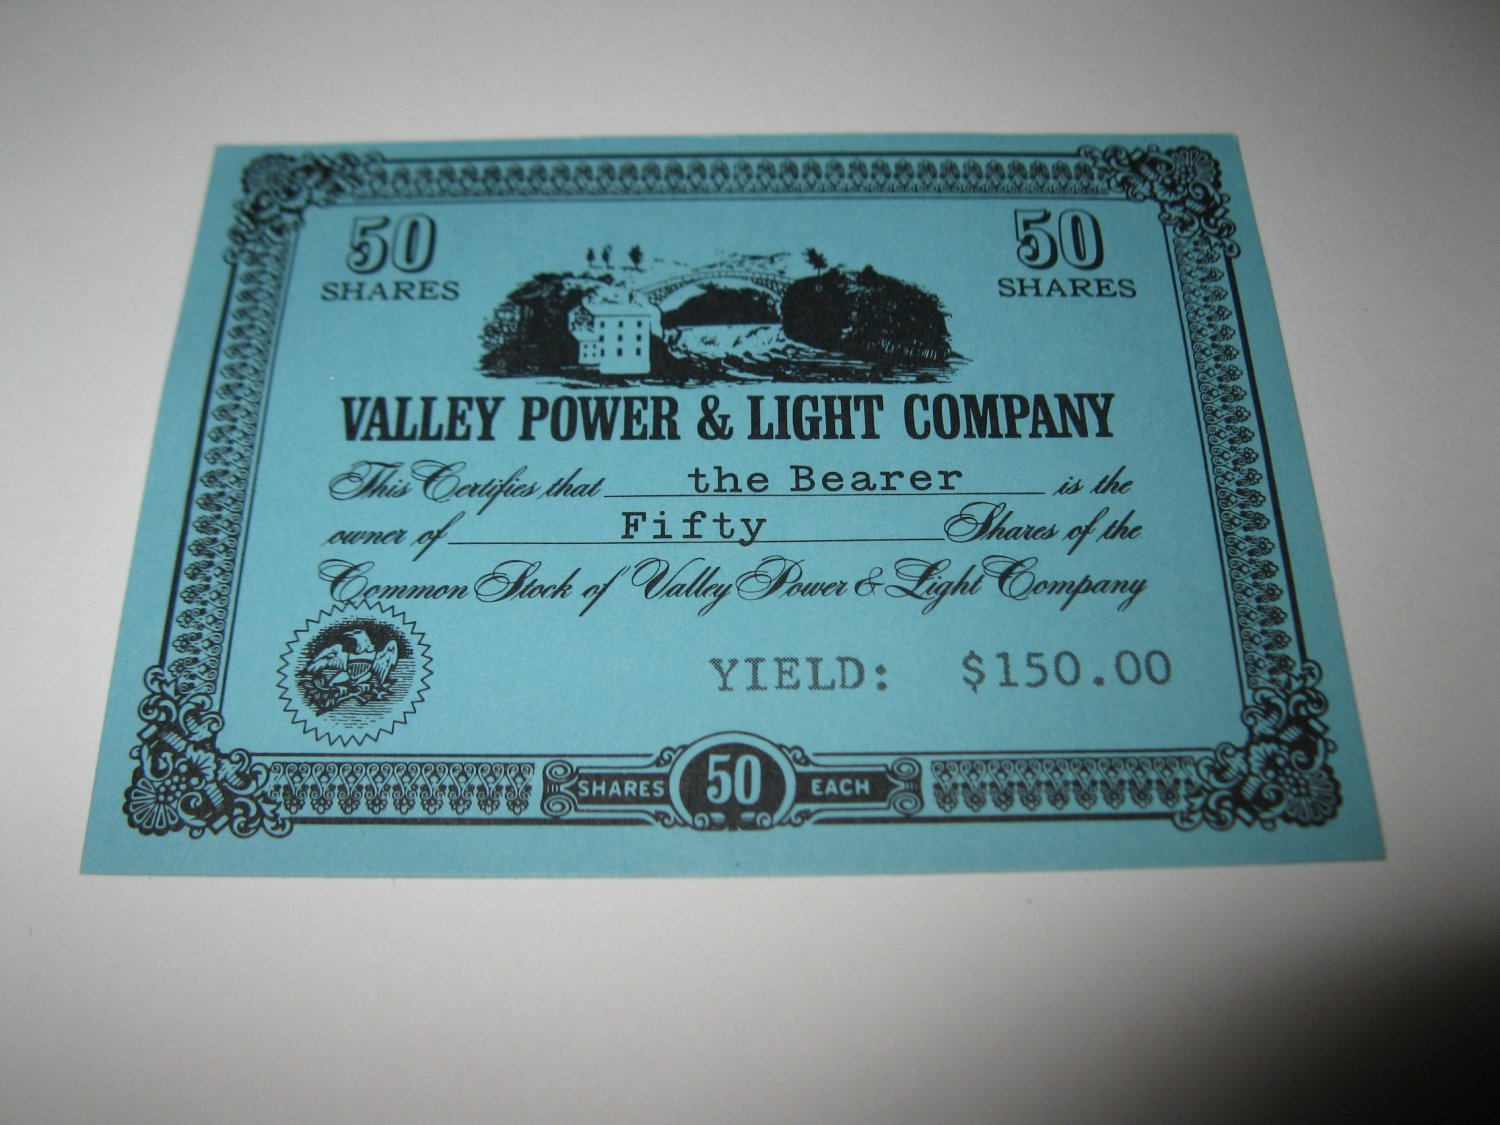 1964 Stocks & Bonds 3M Bookshelf Board Game Piece: single Valley Power & Light 50 Shares stock card